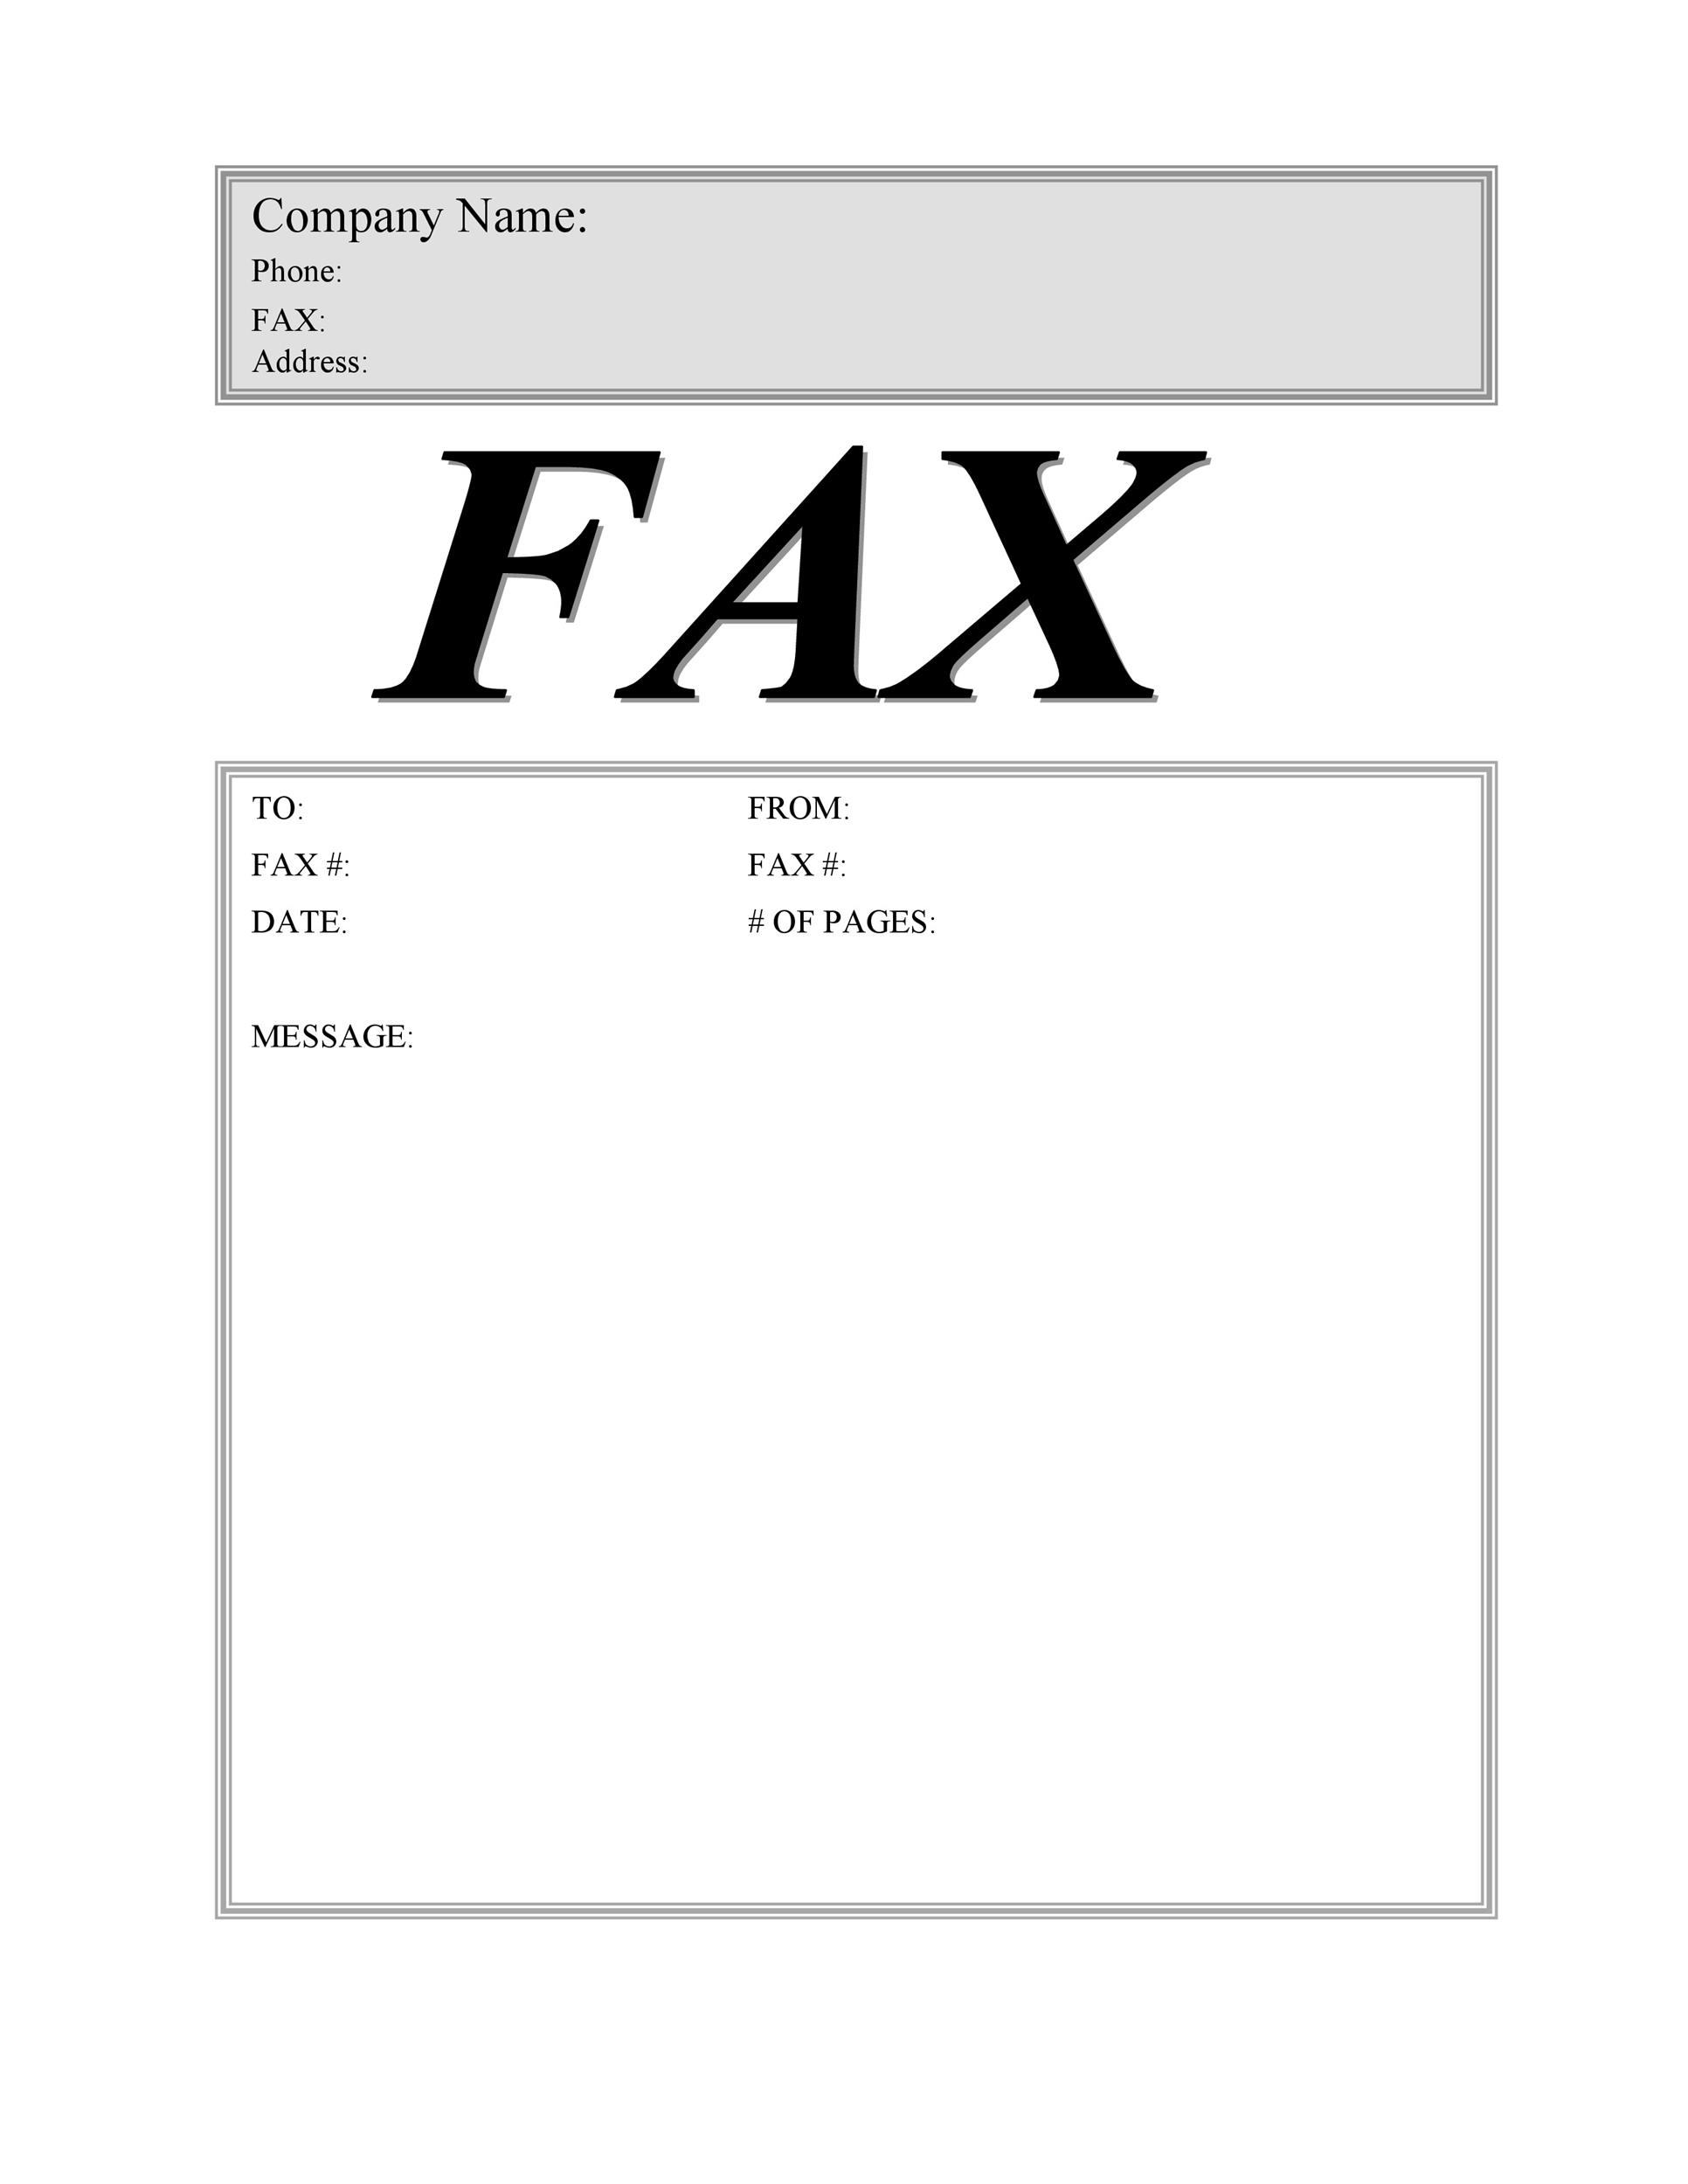 Free Fax Cover Sheet Template 09